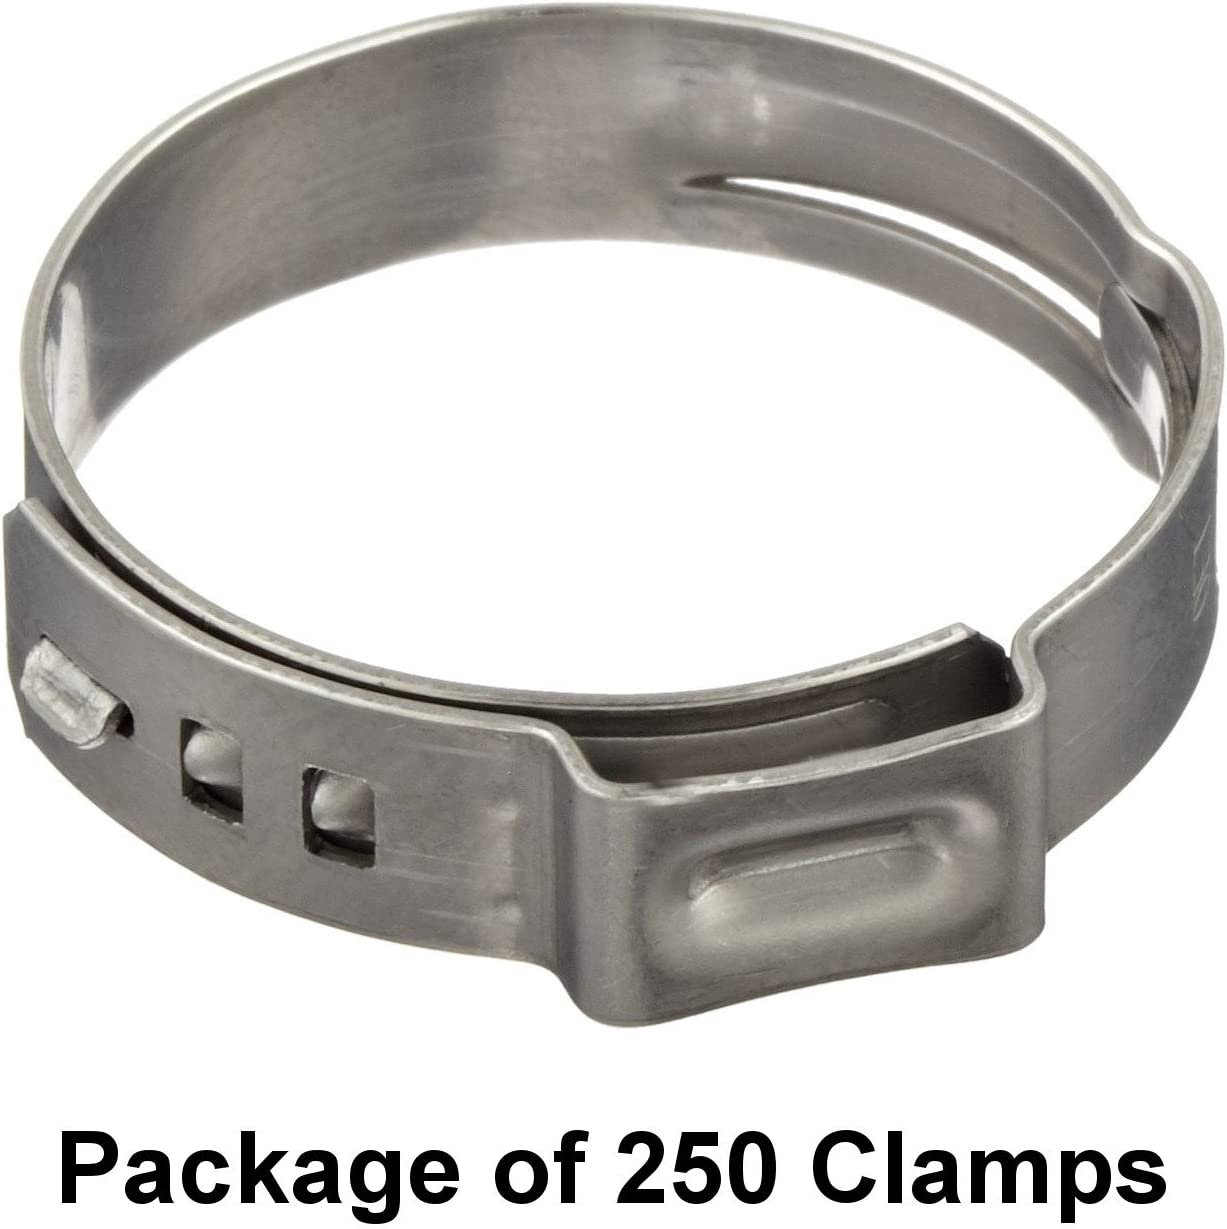 Single Ear Hose Clamps 500 Oetiker Stepless Ear Clamps Size 9//16 7 Pack Sizes Available 14.5 mm